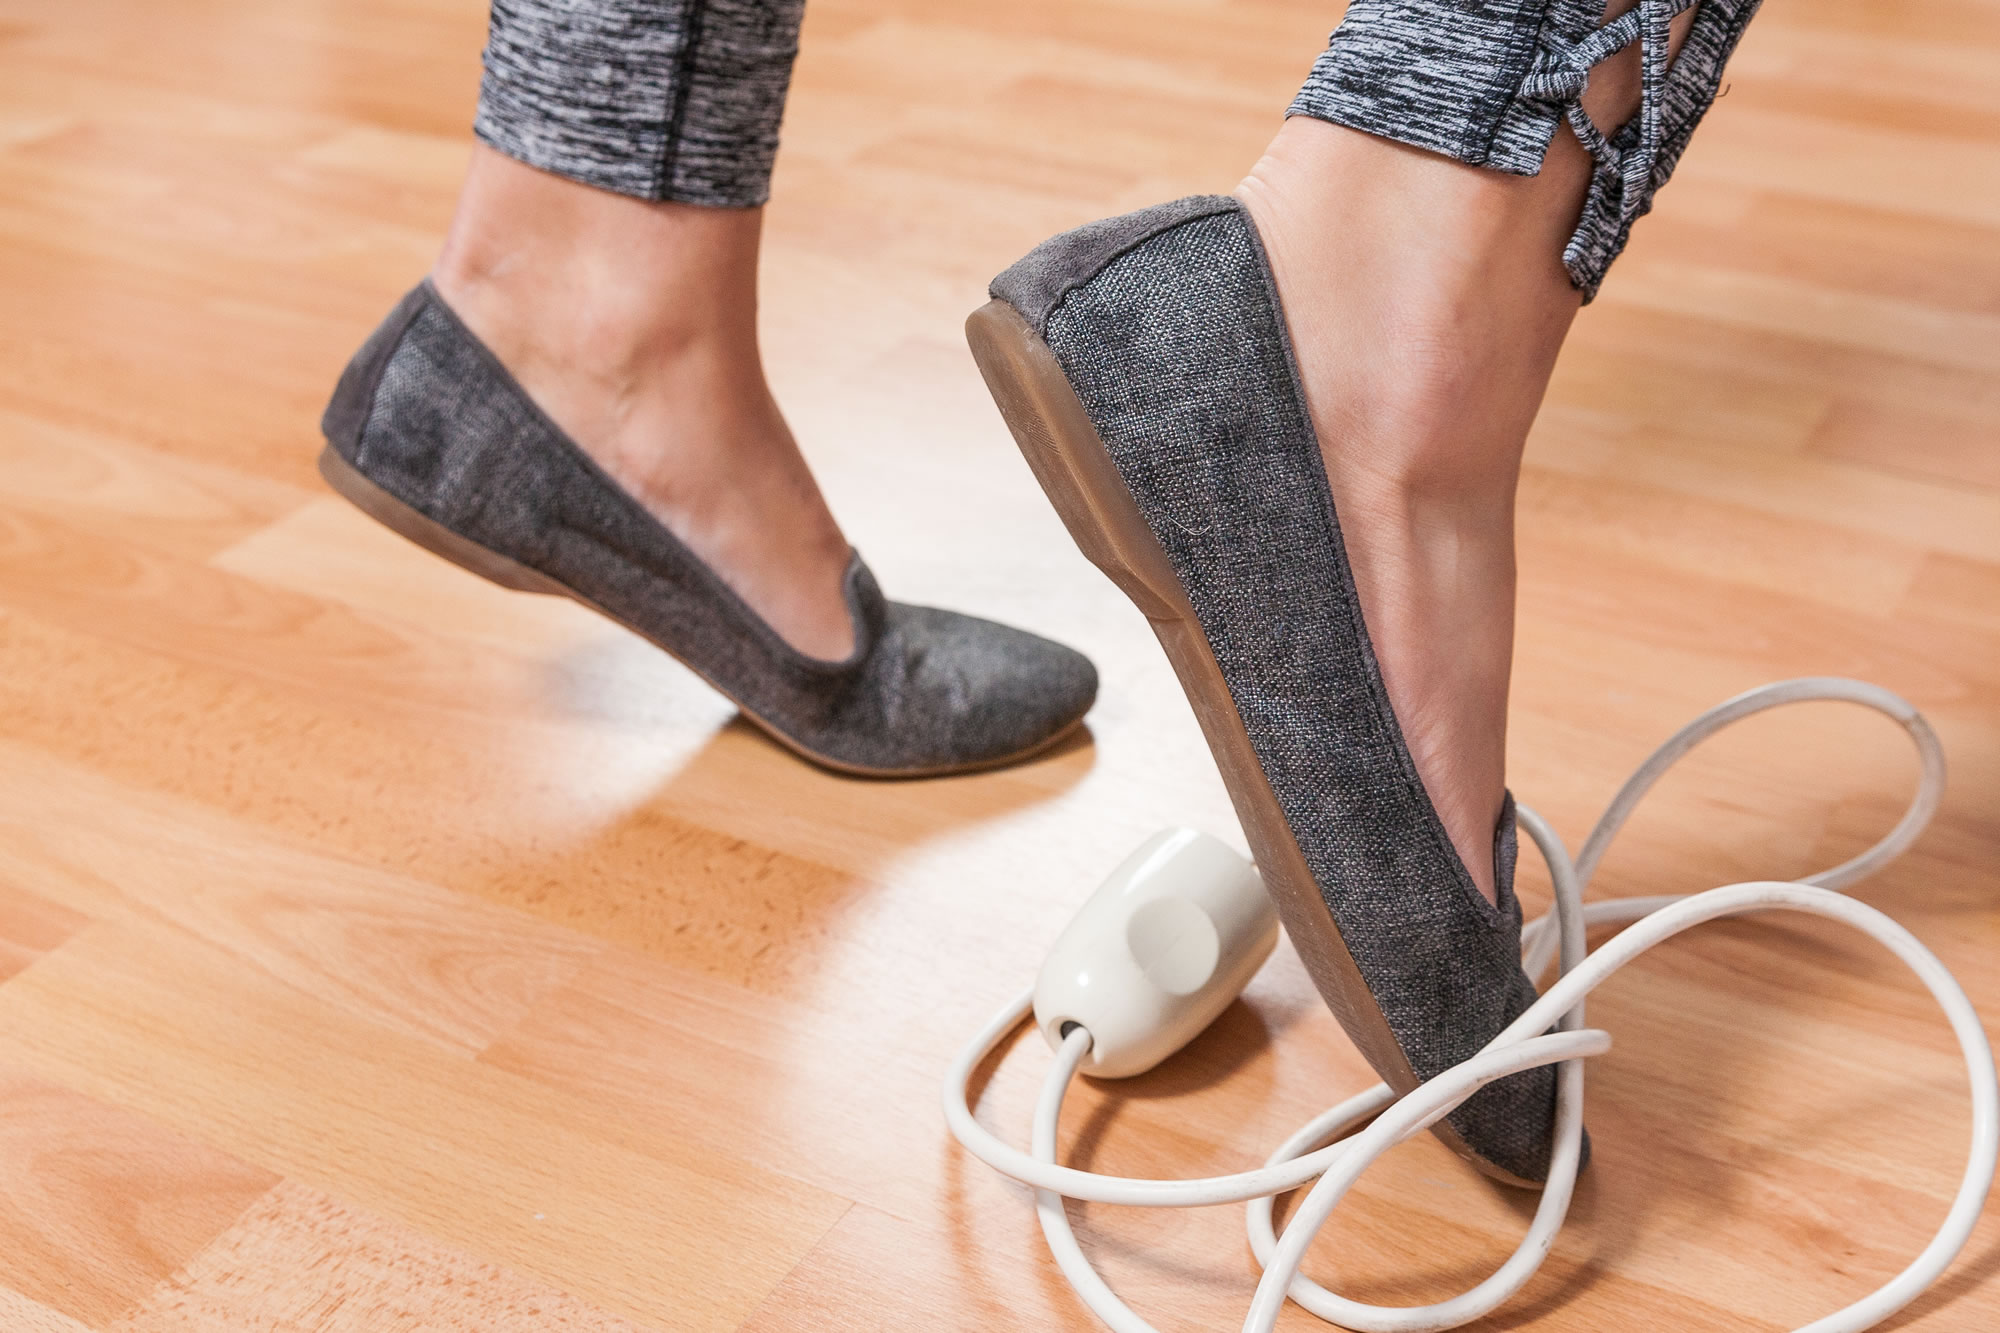 workplace slips, trip and falls, accident at work compensation solicitors Aberdeen